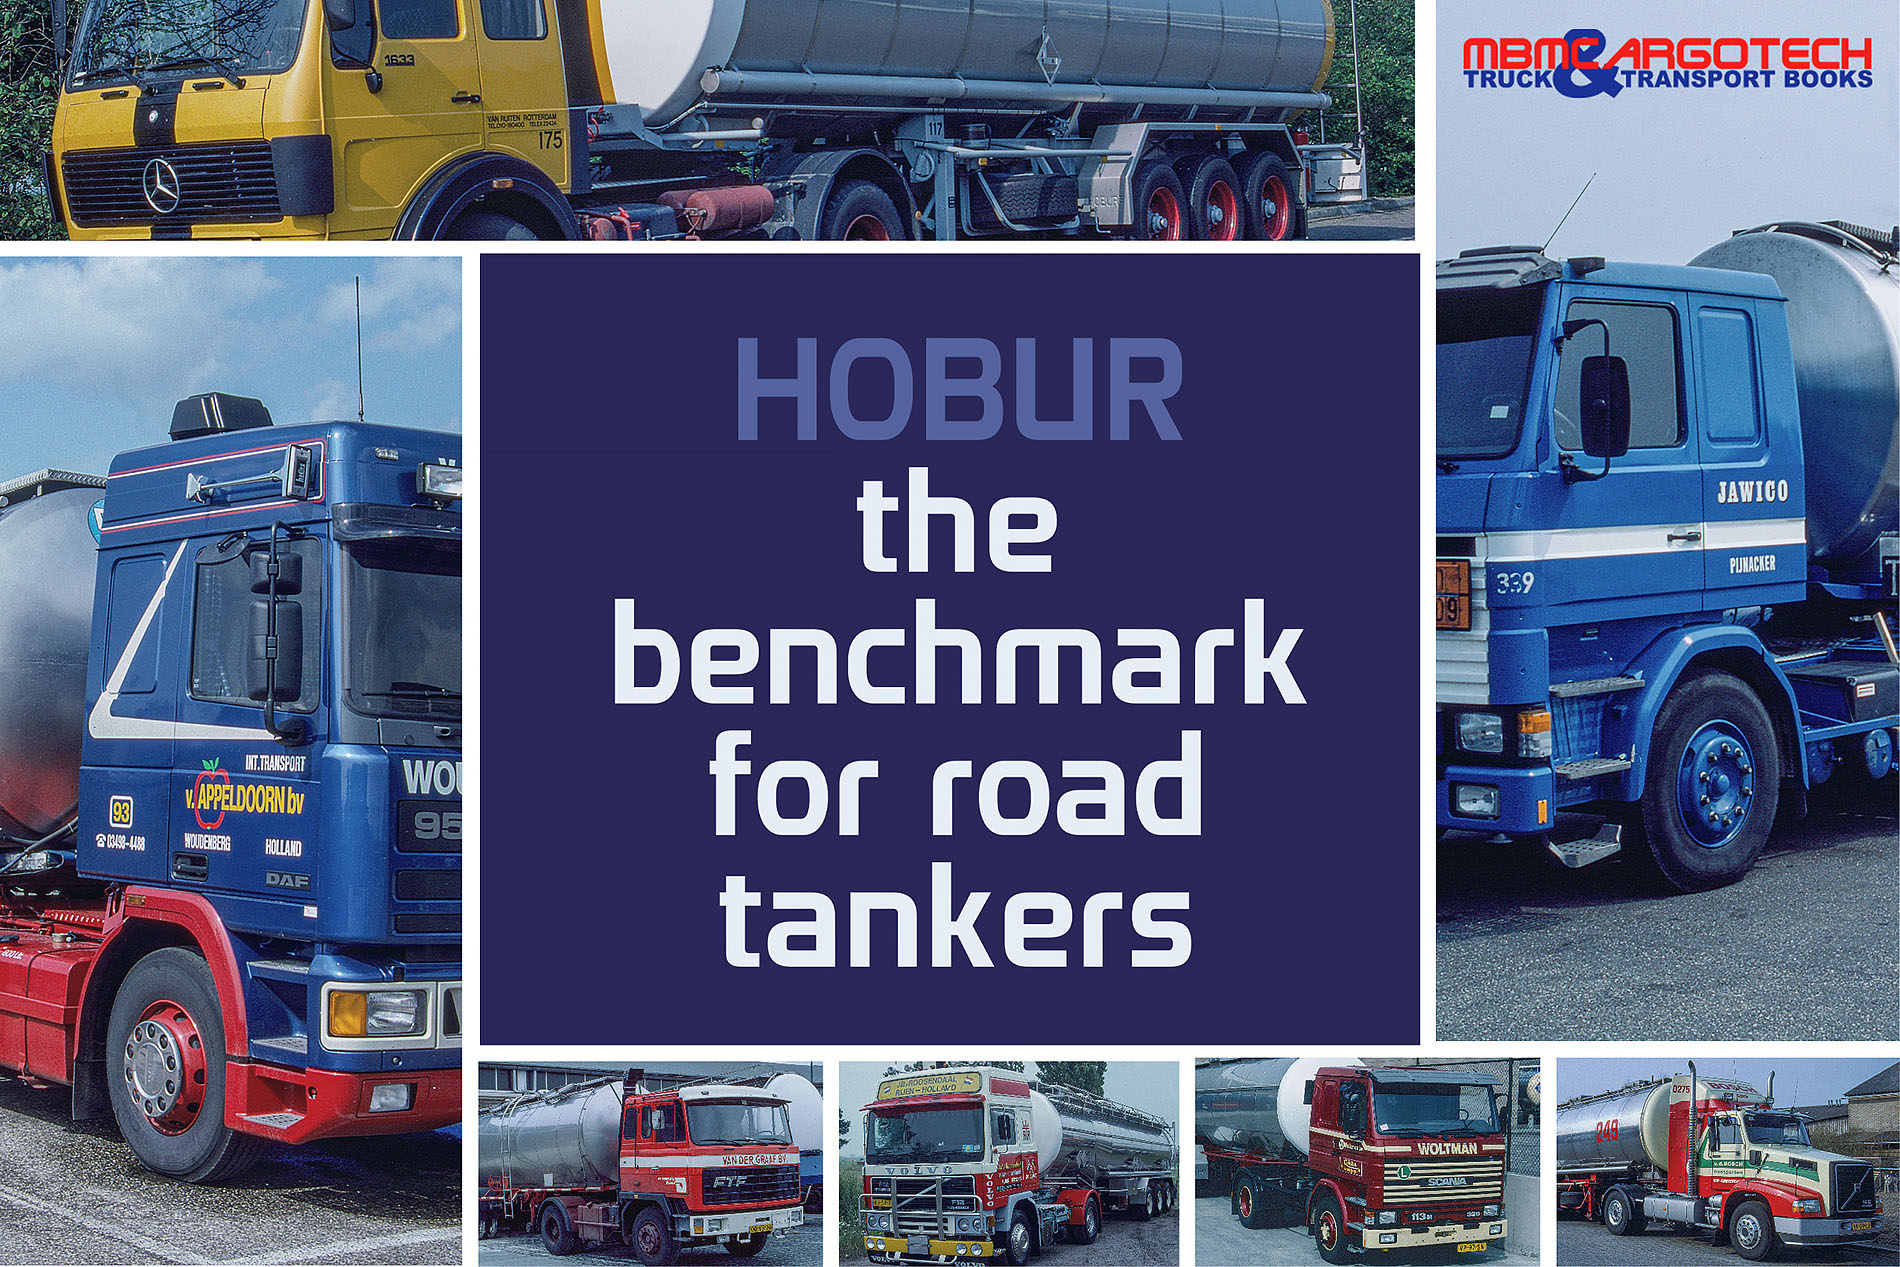 HOBUR_the_bench_mark_for_road_tankers1900.jpg